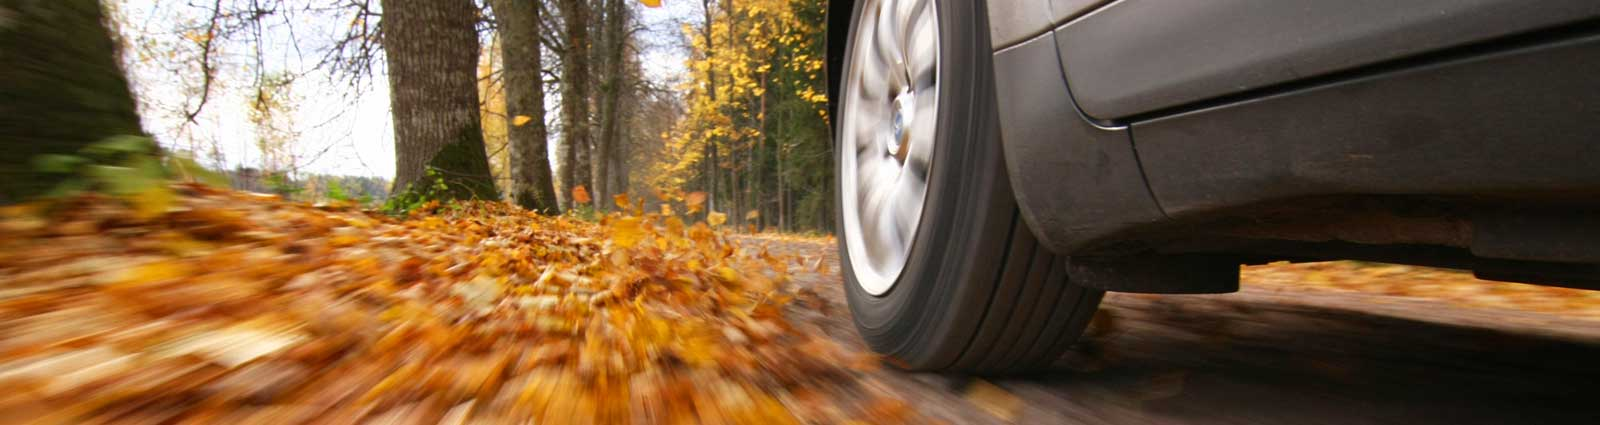 Car Driving in Fall